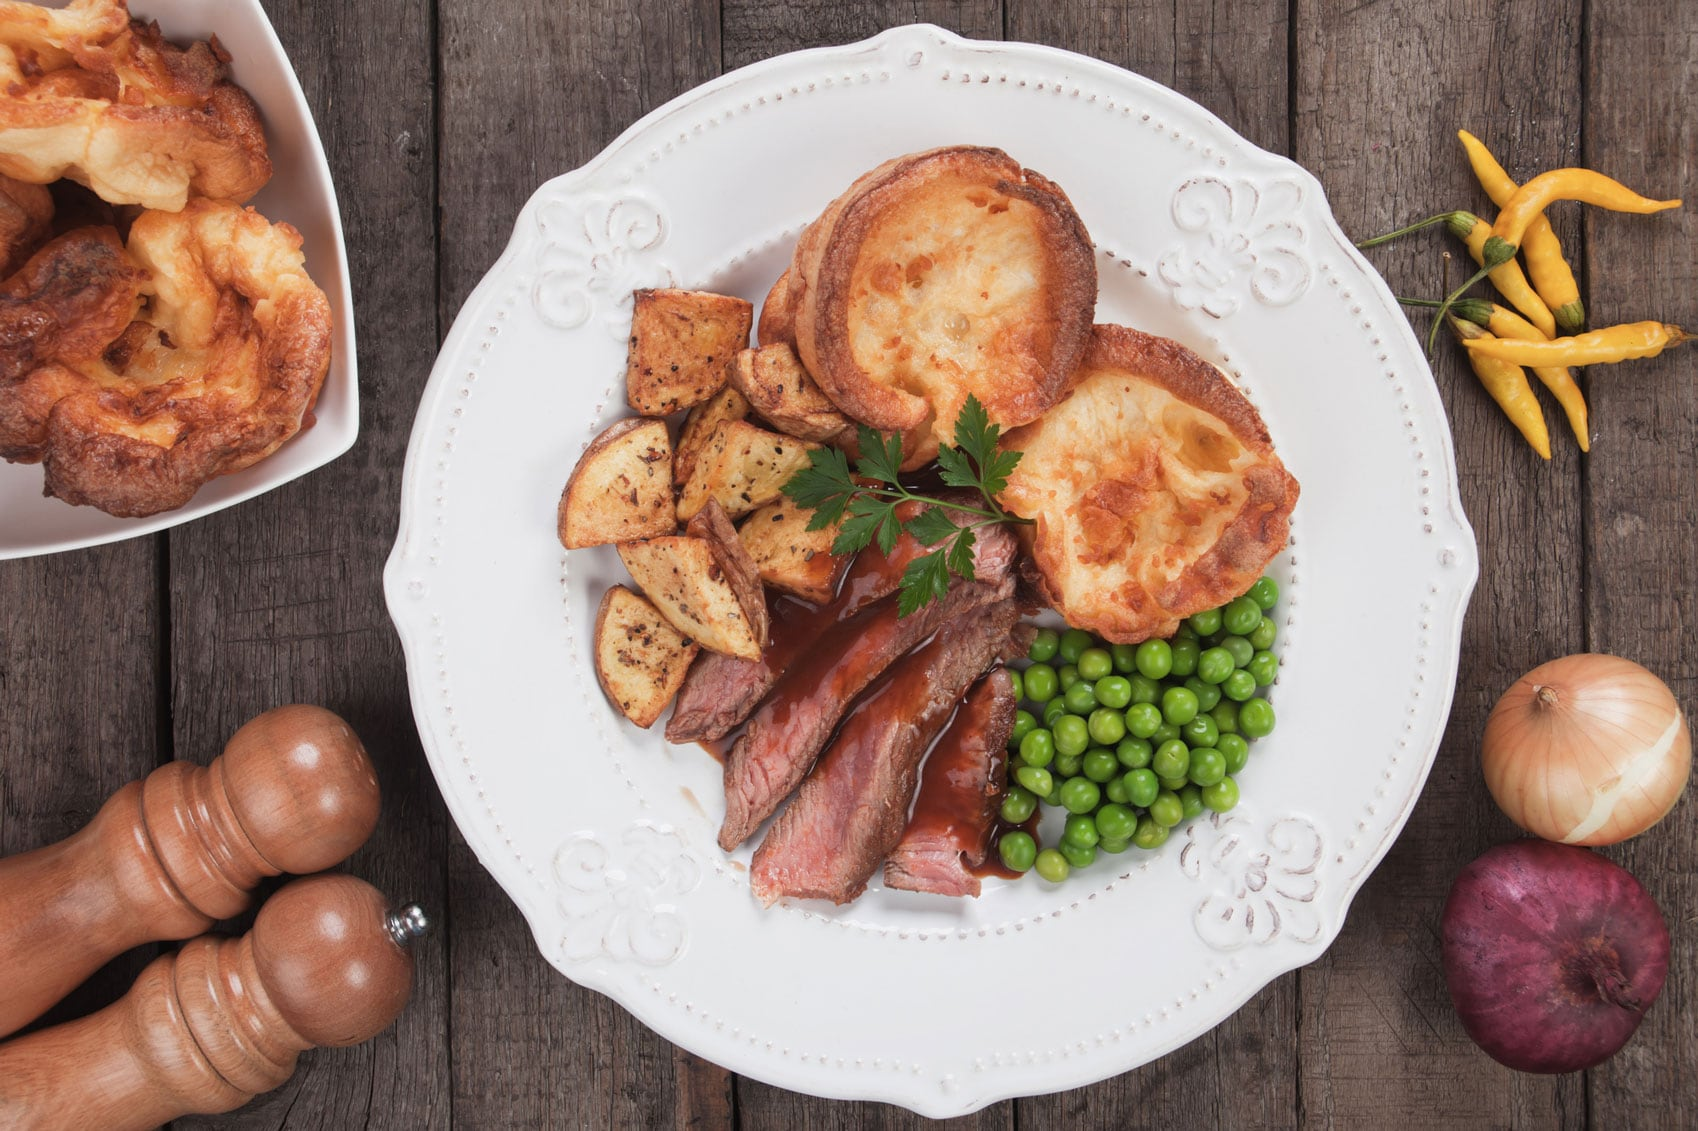 A plate of roast beef, yorkshire puddings, vegetables and gravy